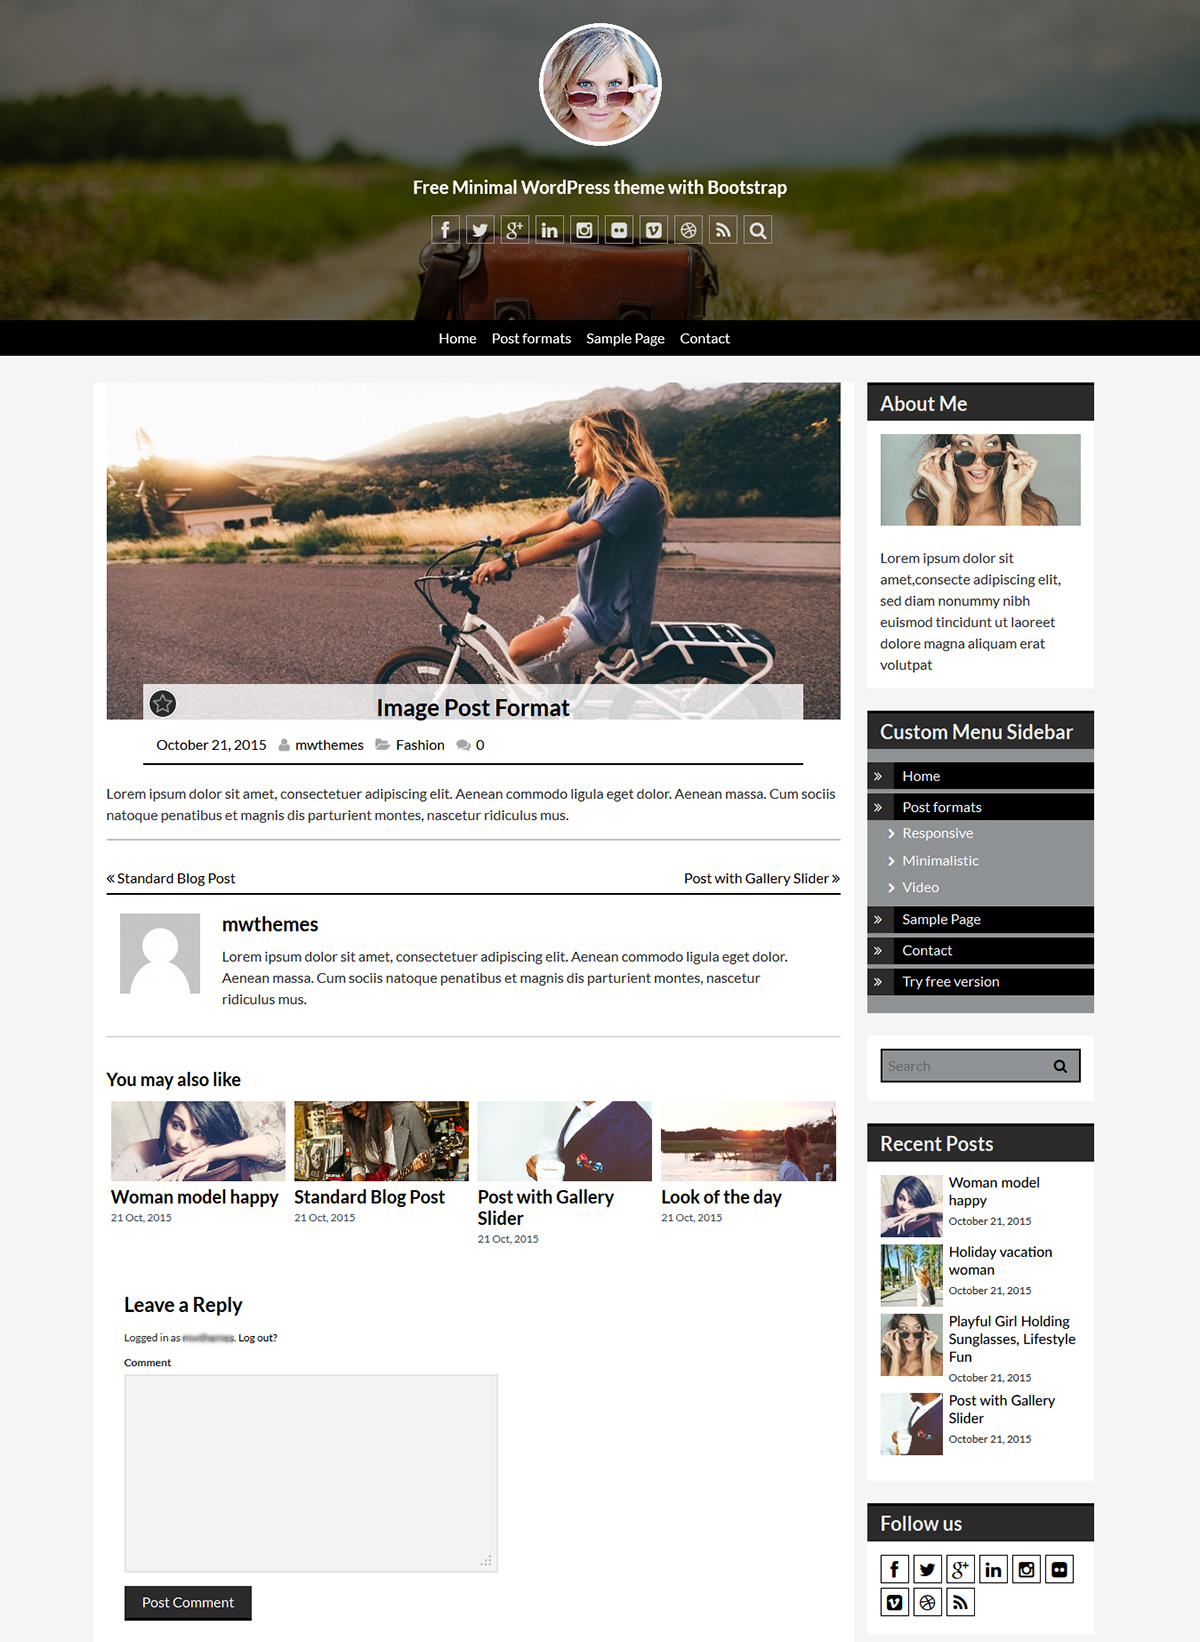 mwsmall-theme-wp-fashion-header-image